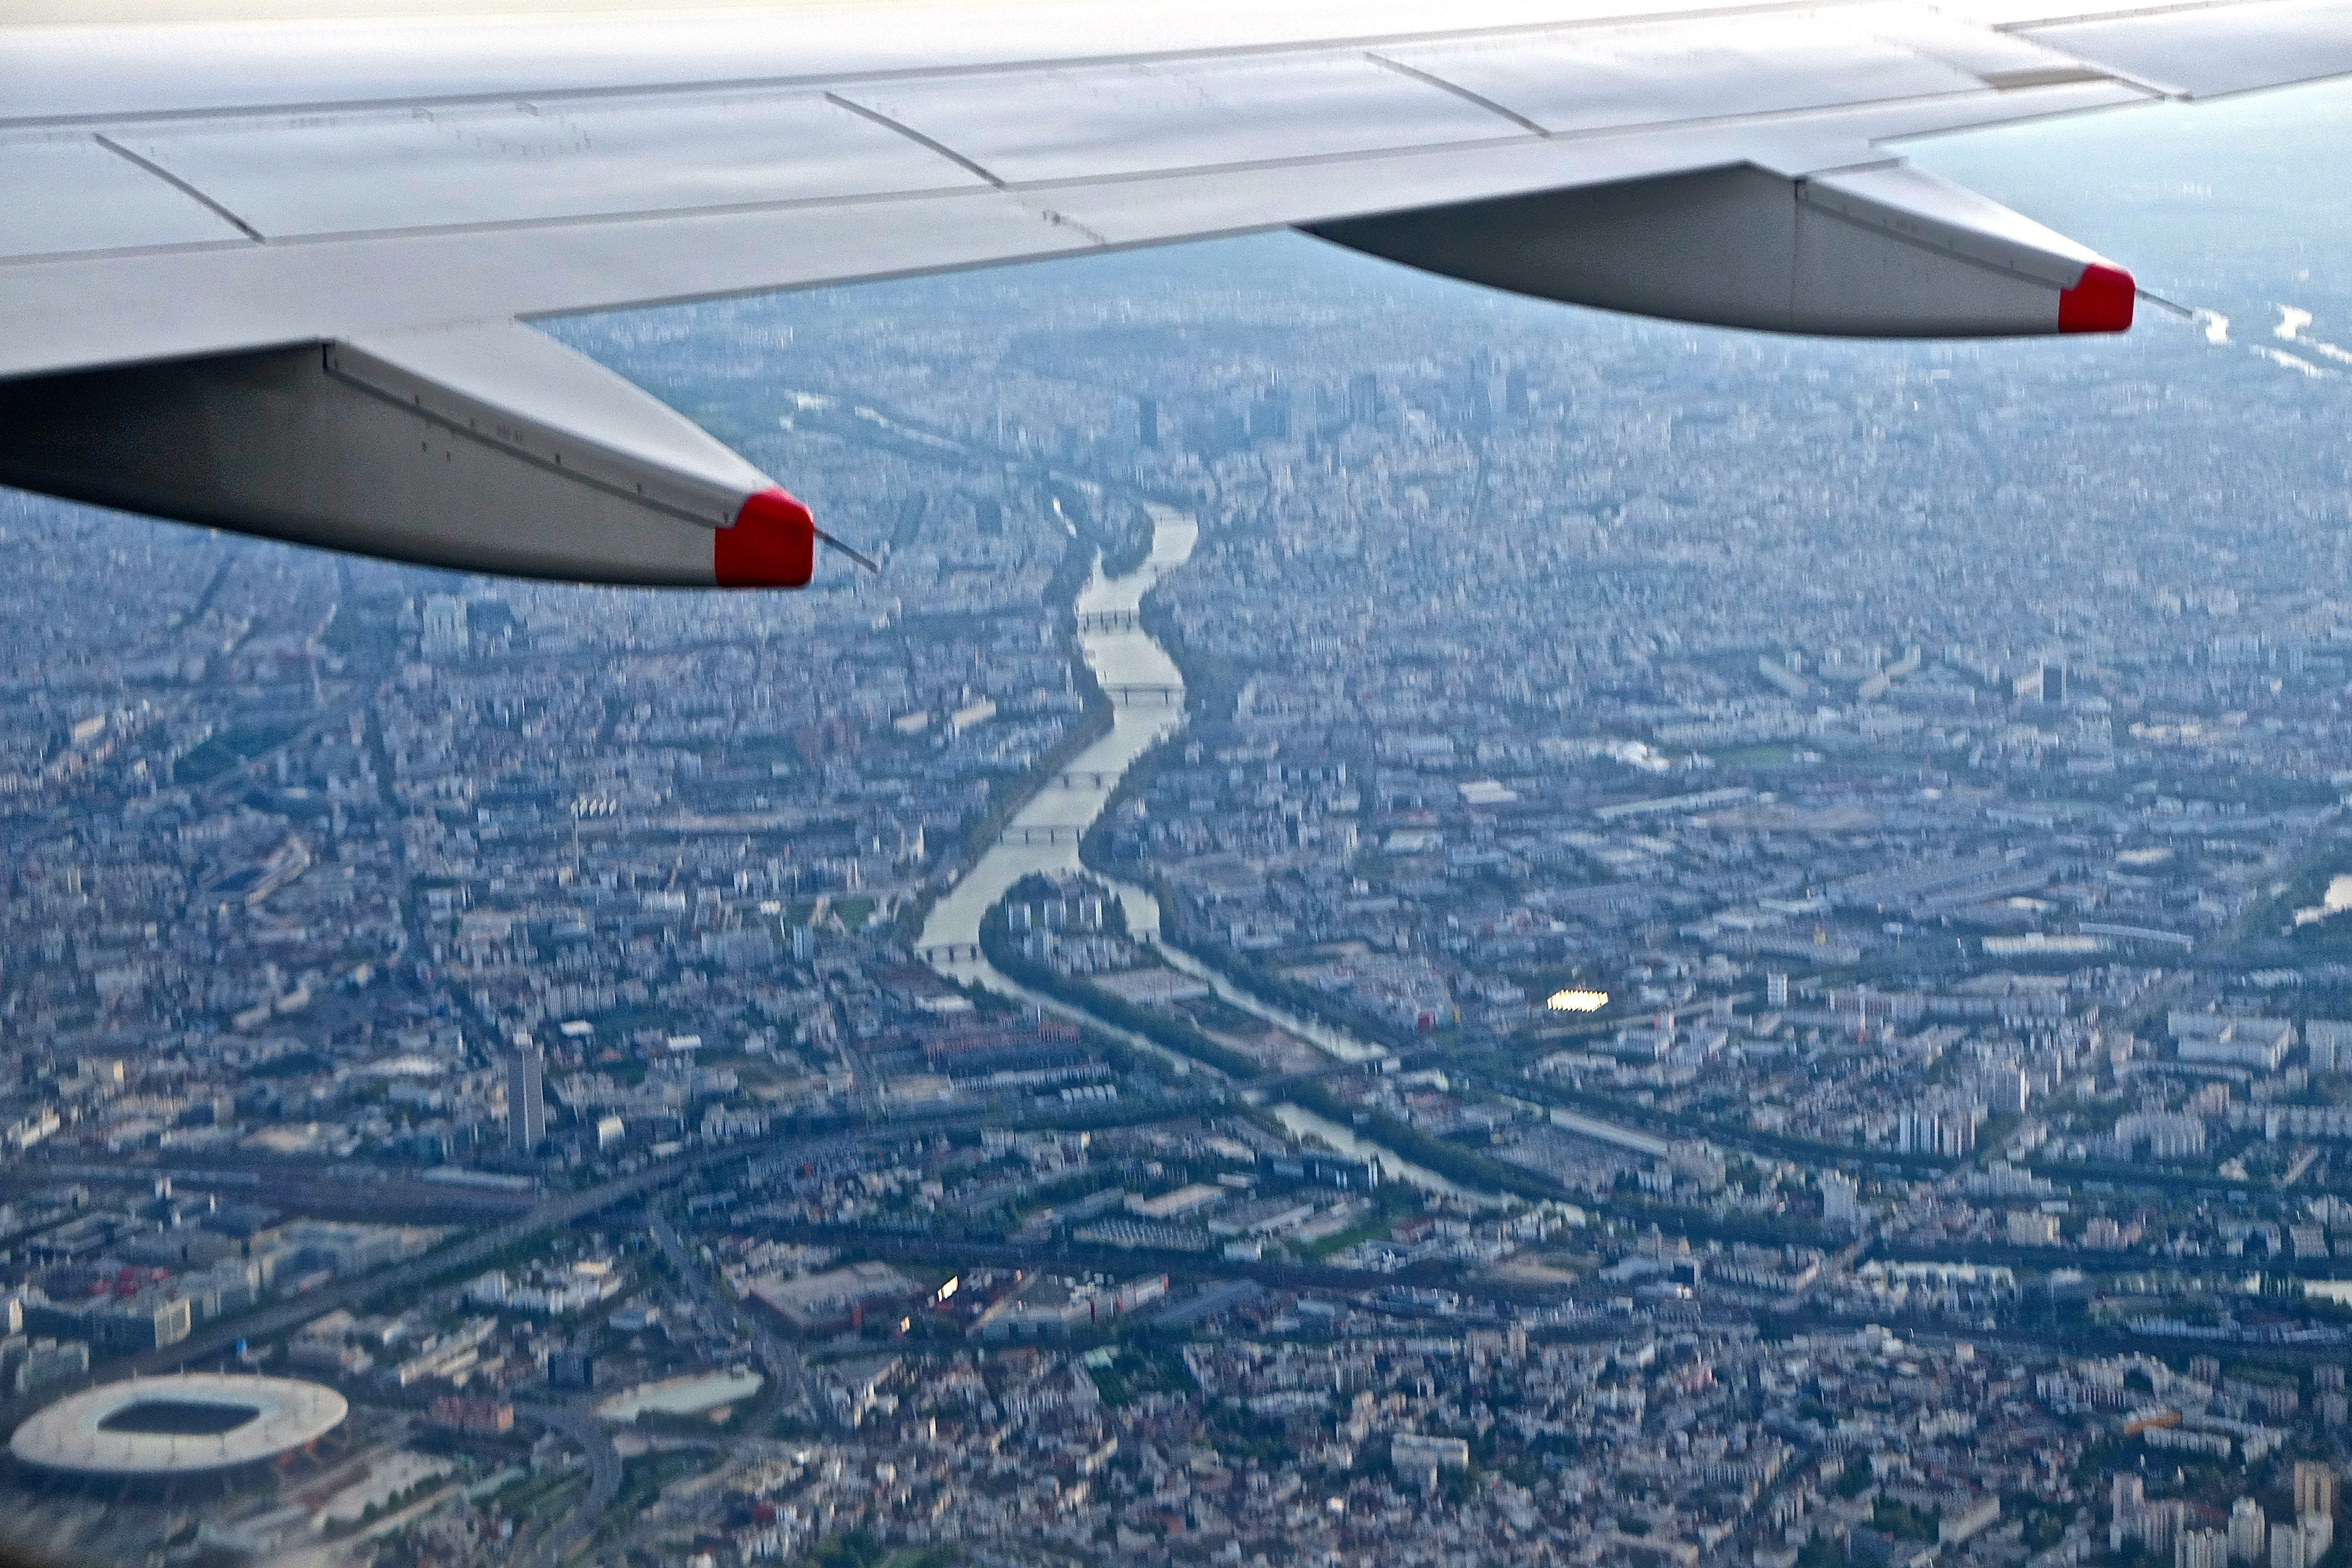 Seine as seen from the air